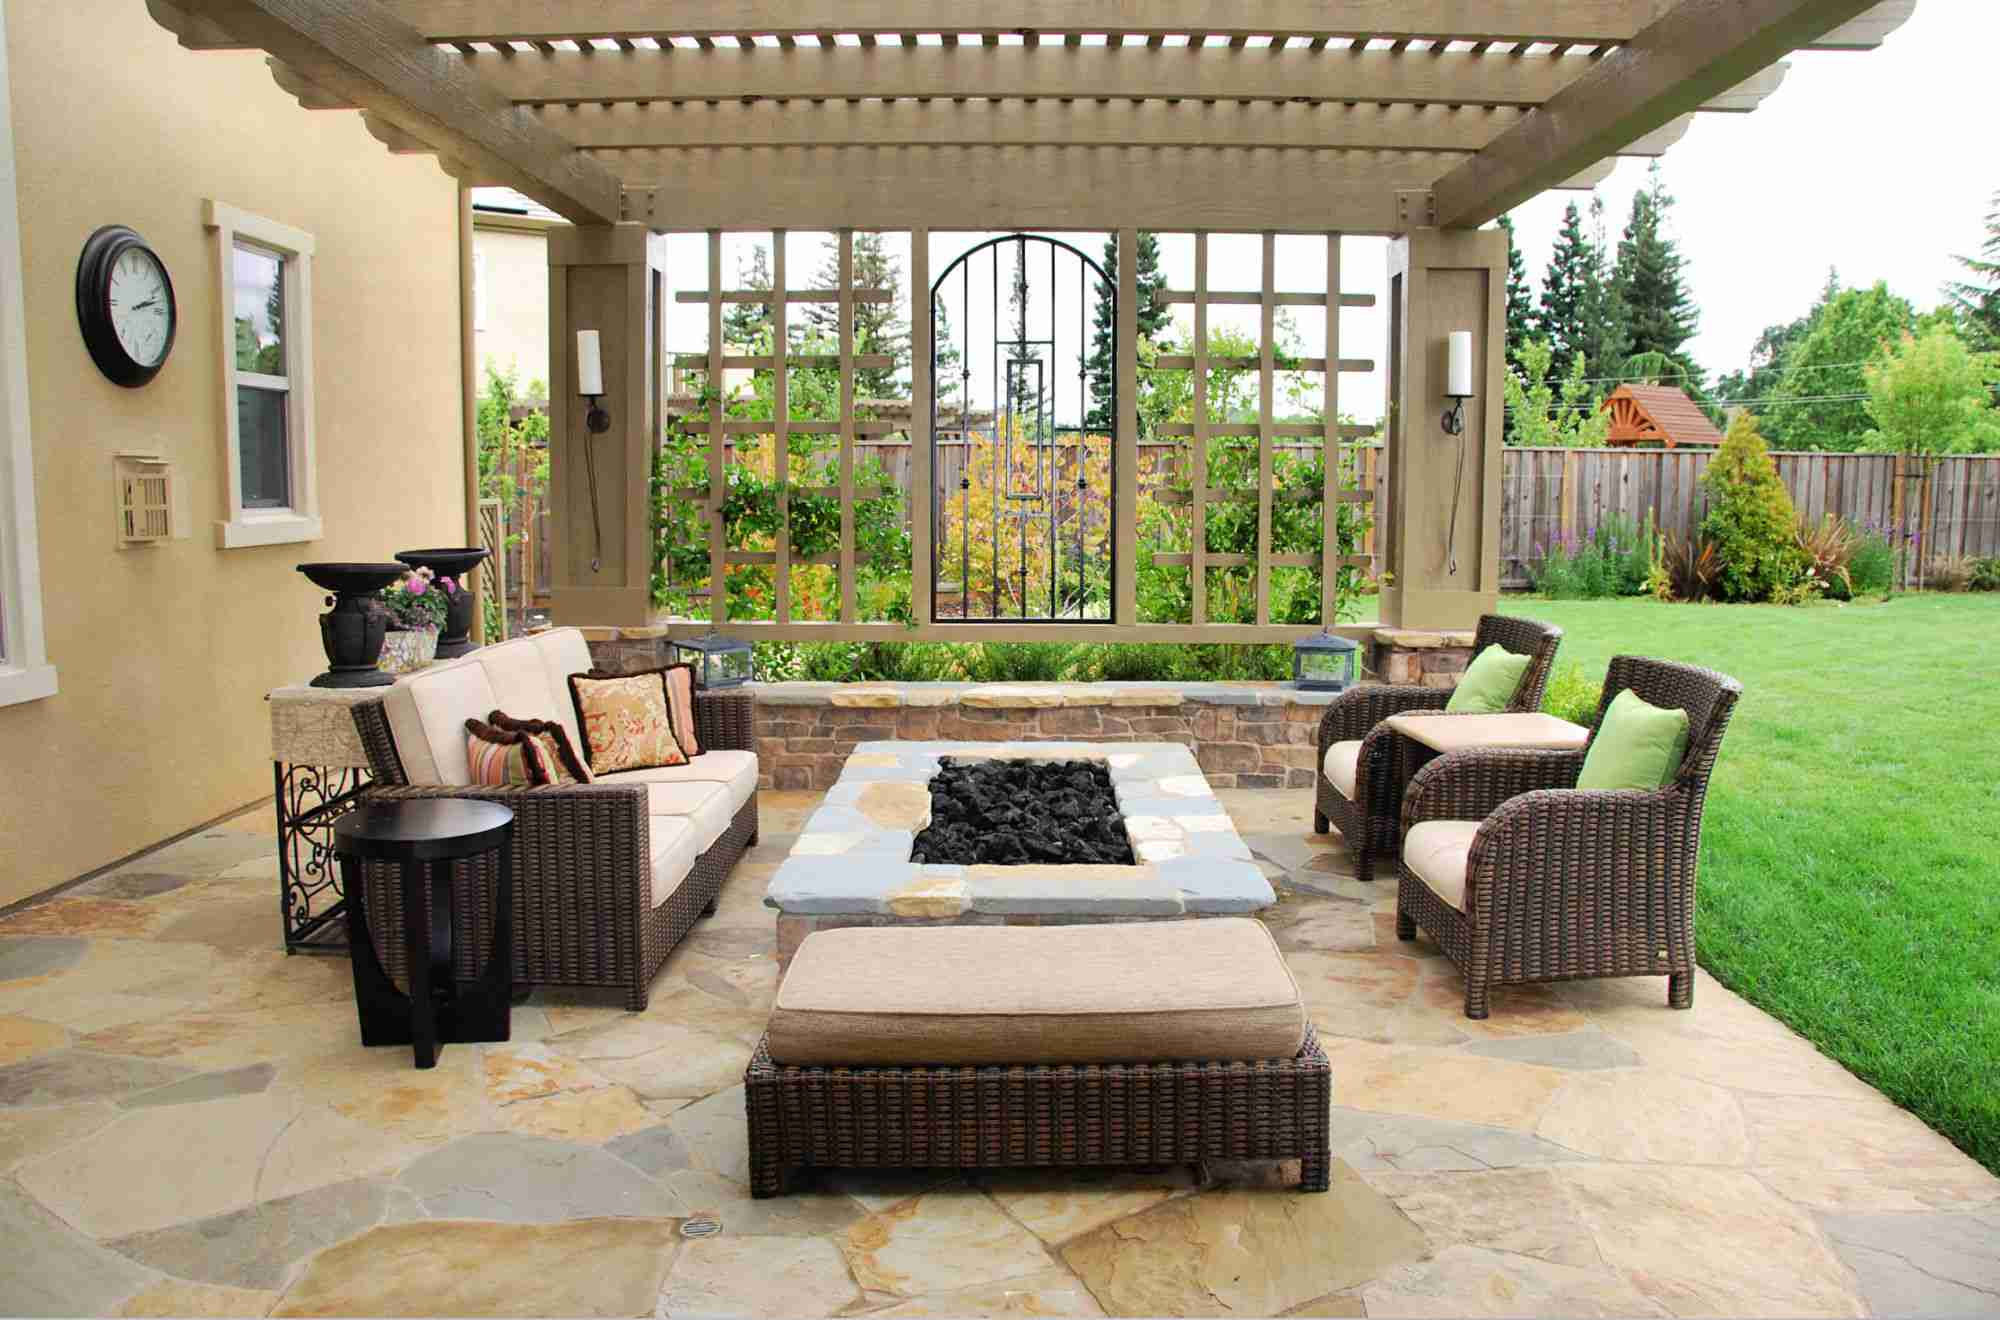 15 Stone Fire Pits to Spark Ideas on Rectangular Patio Design id=23209